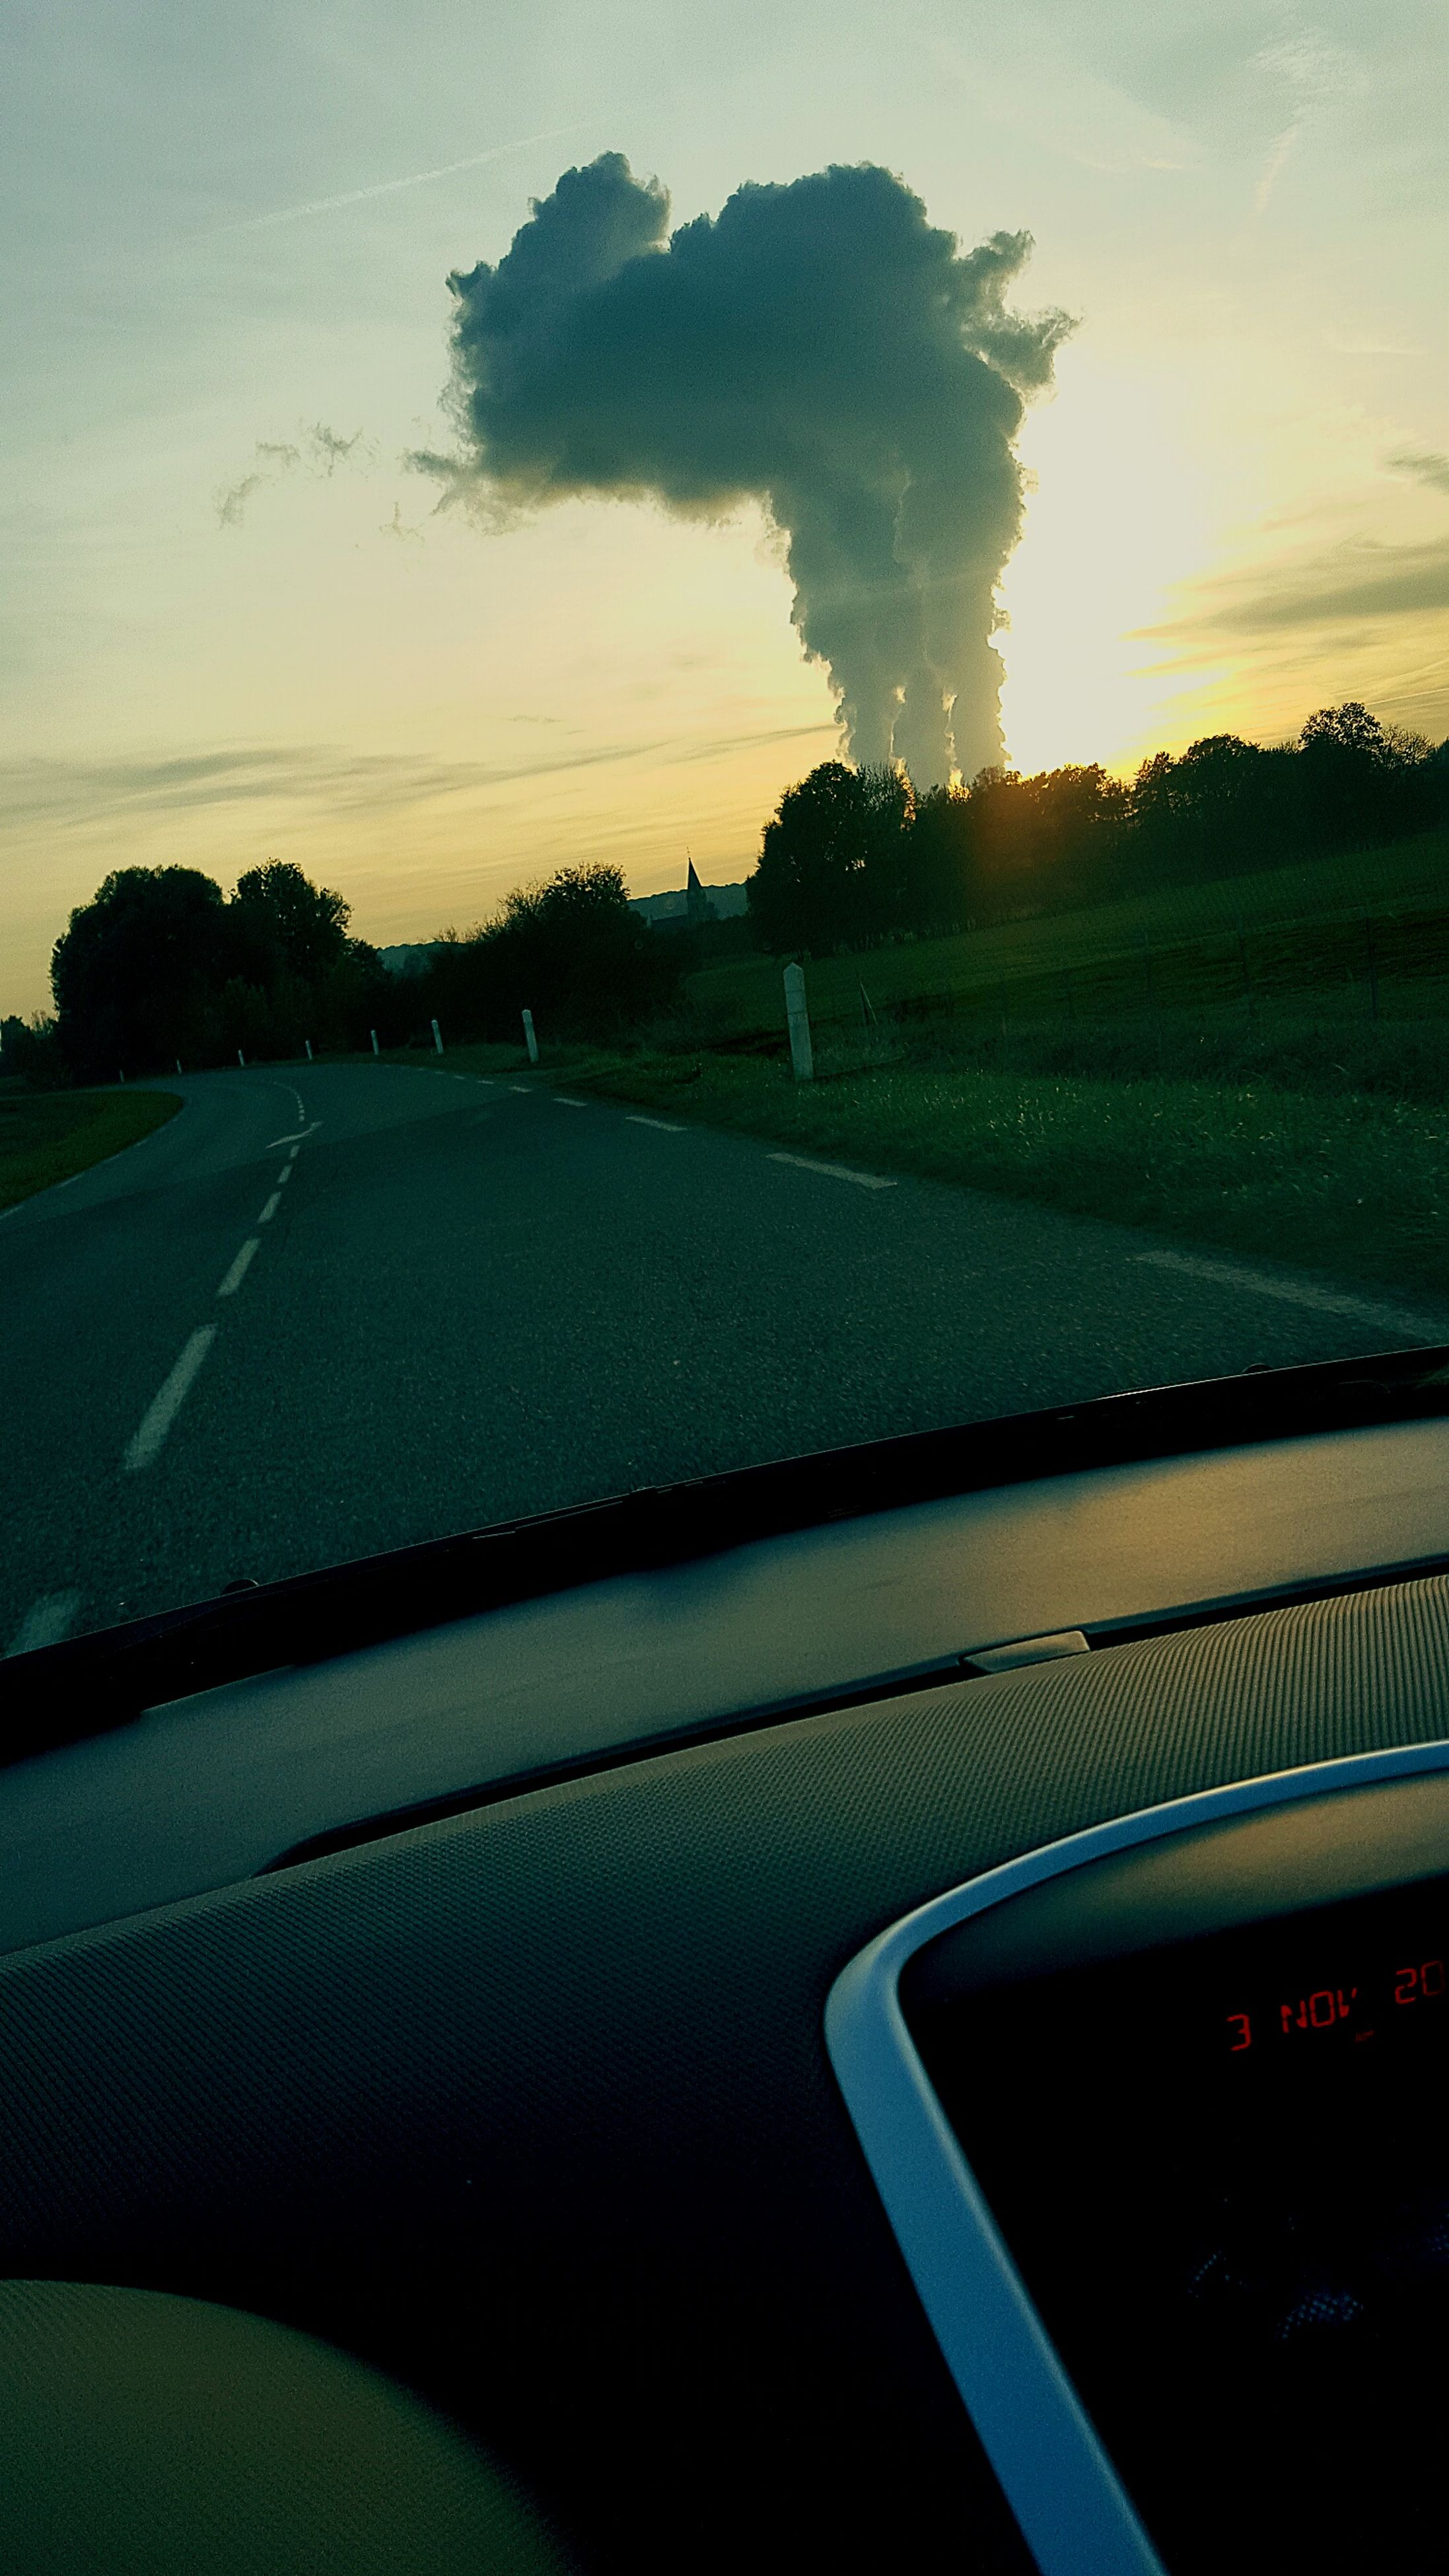 transportation, tree, car, sky, sunset, no people, road, nature, outdoors, day, close-up